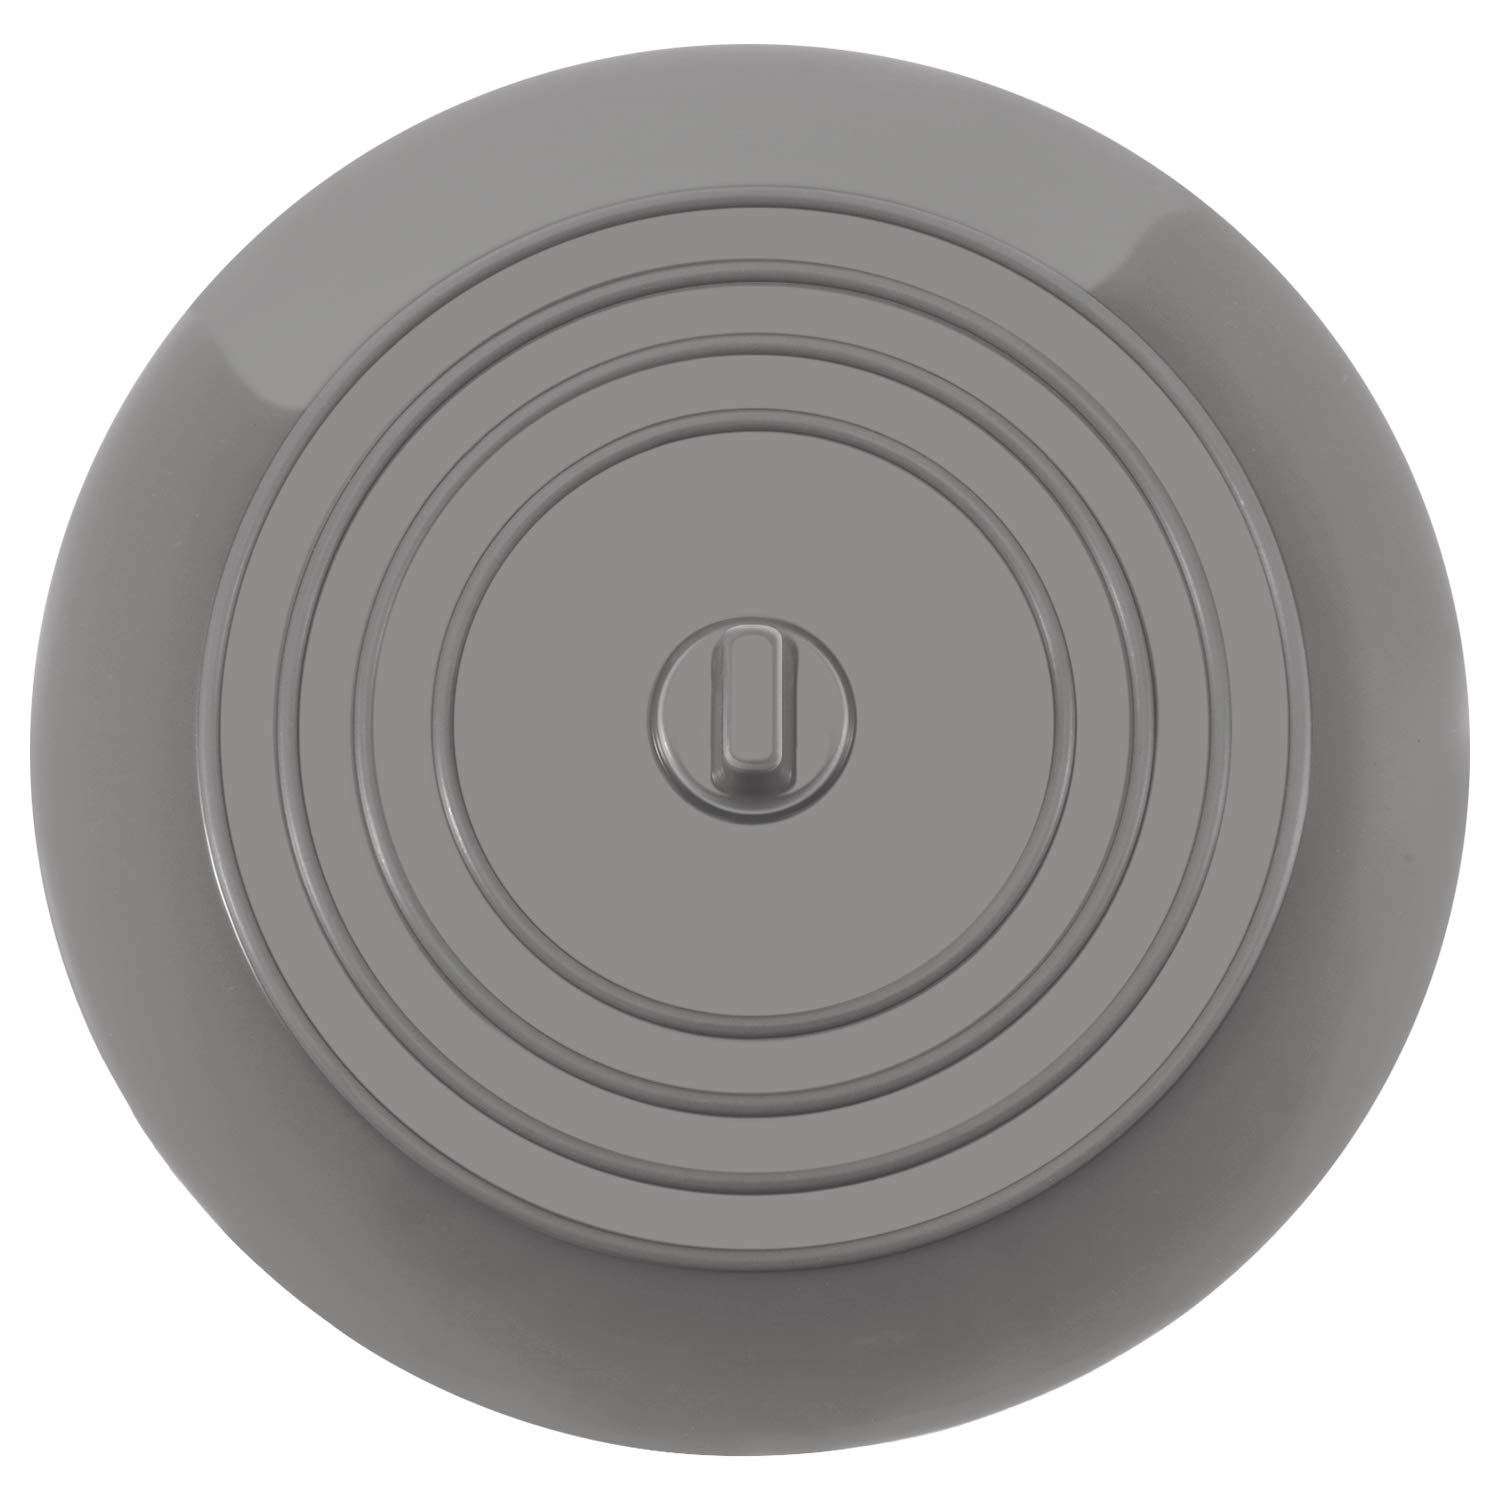 Mudder 6 Inches Silicone Tub Stopper Drain Plug for Kitchens, Bathrooms and Laundries (Light Gray, 1)